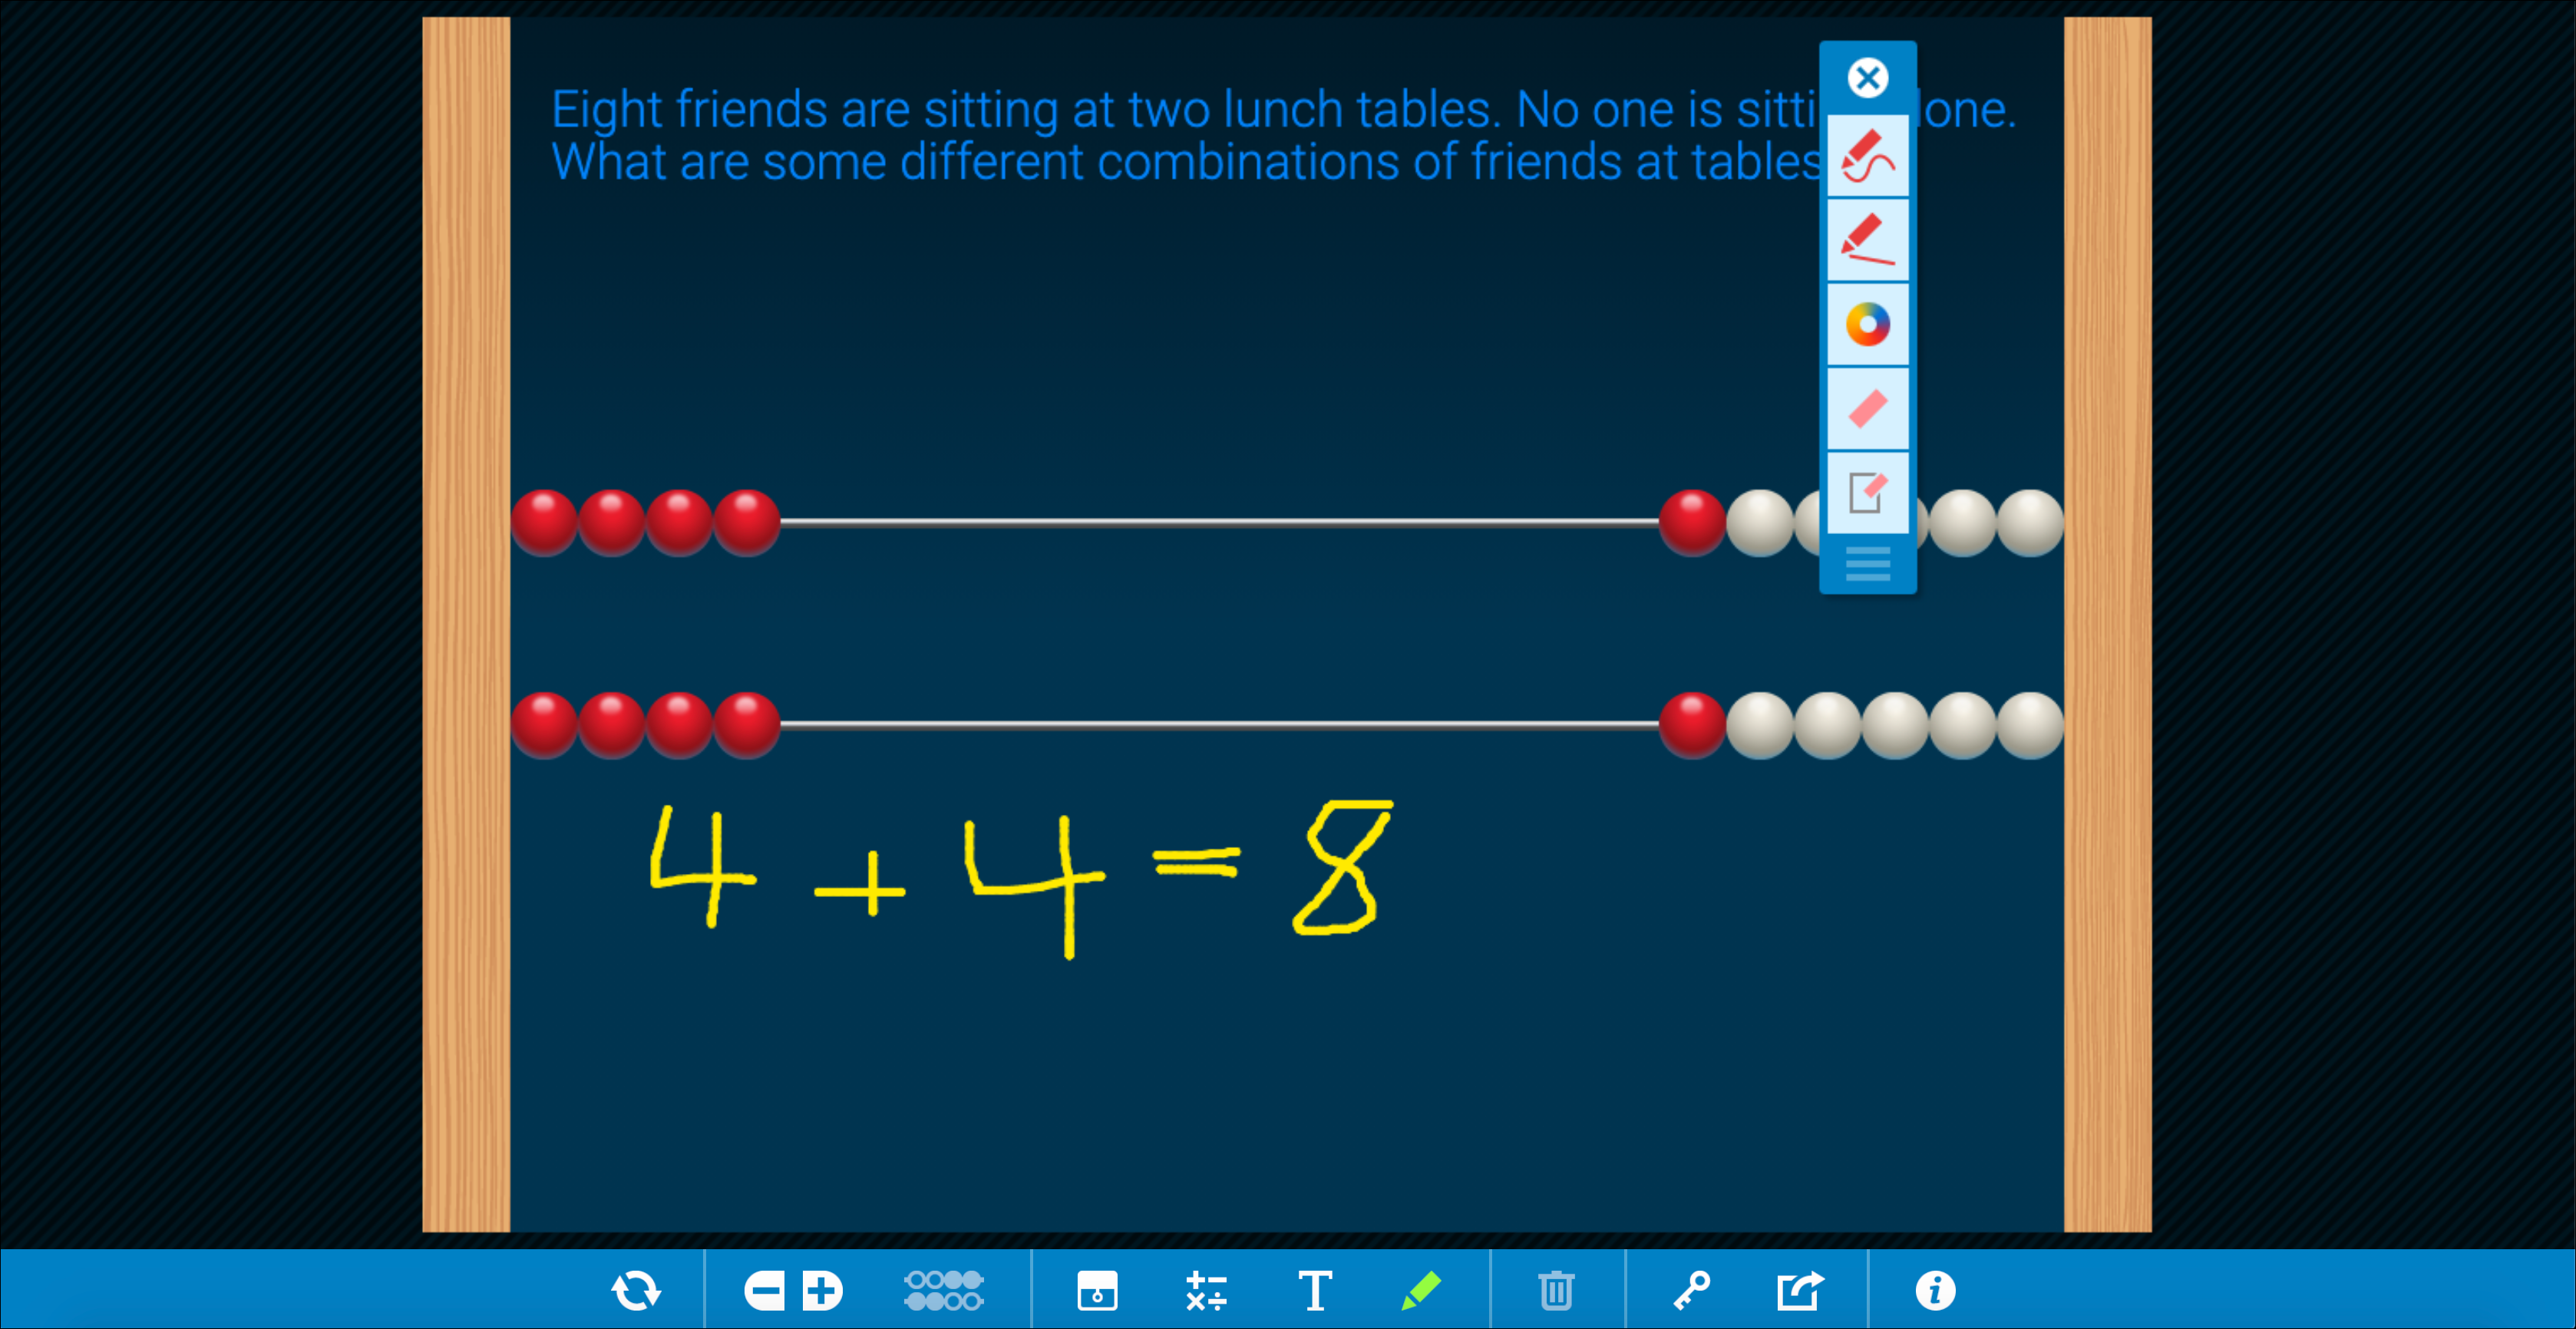 The Number Rack app solving the Lunchtime app activity